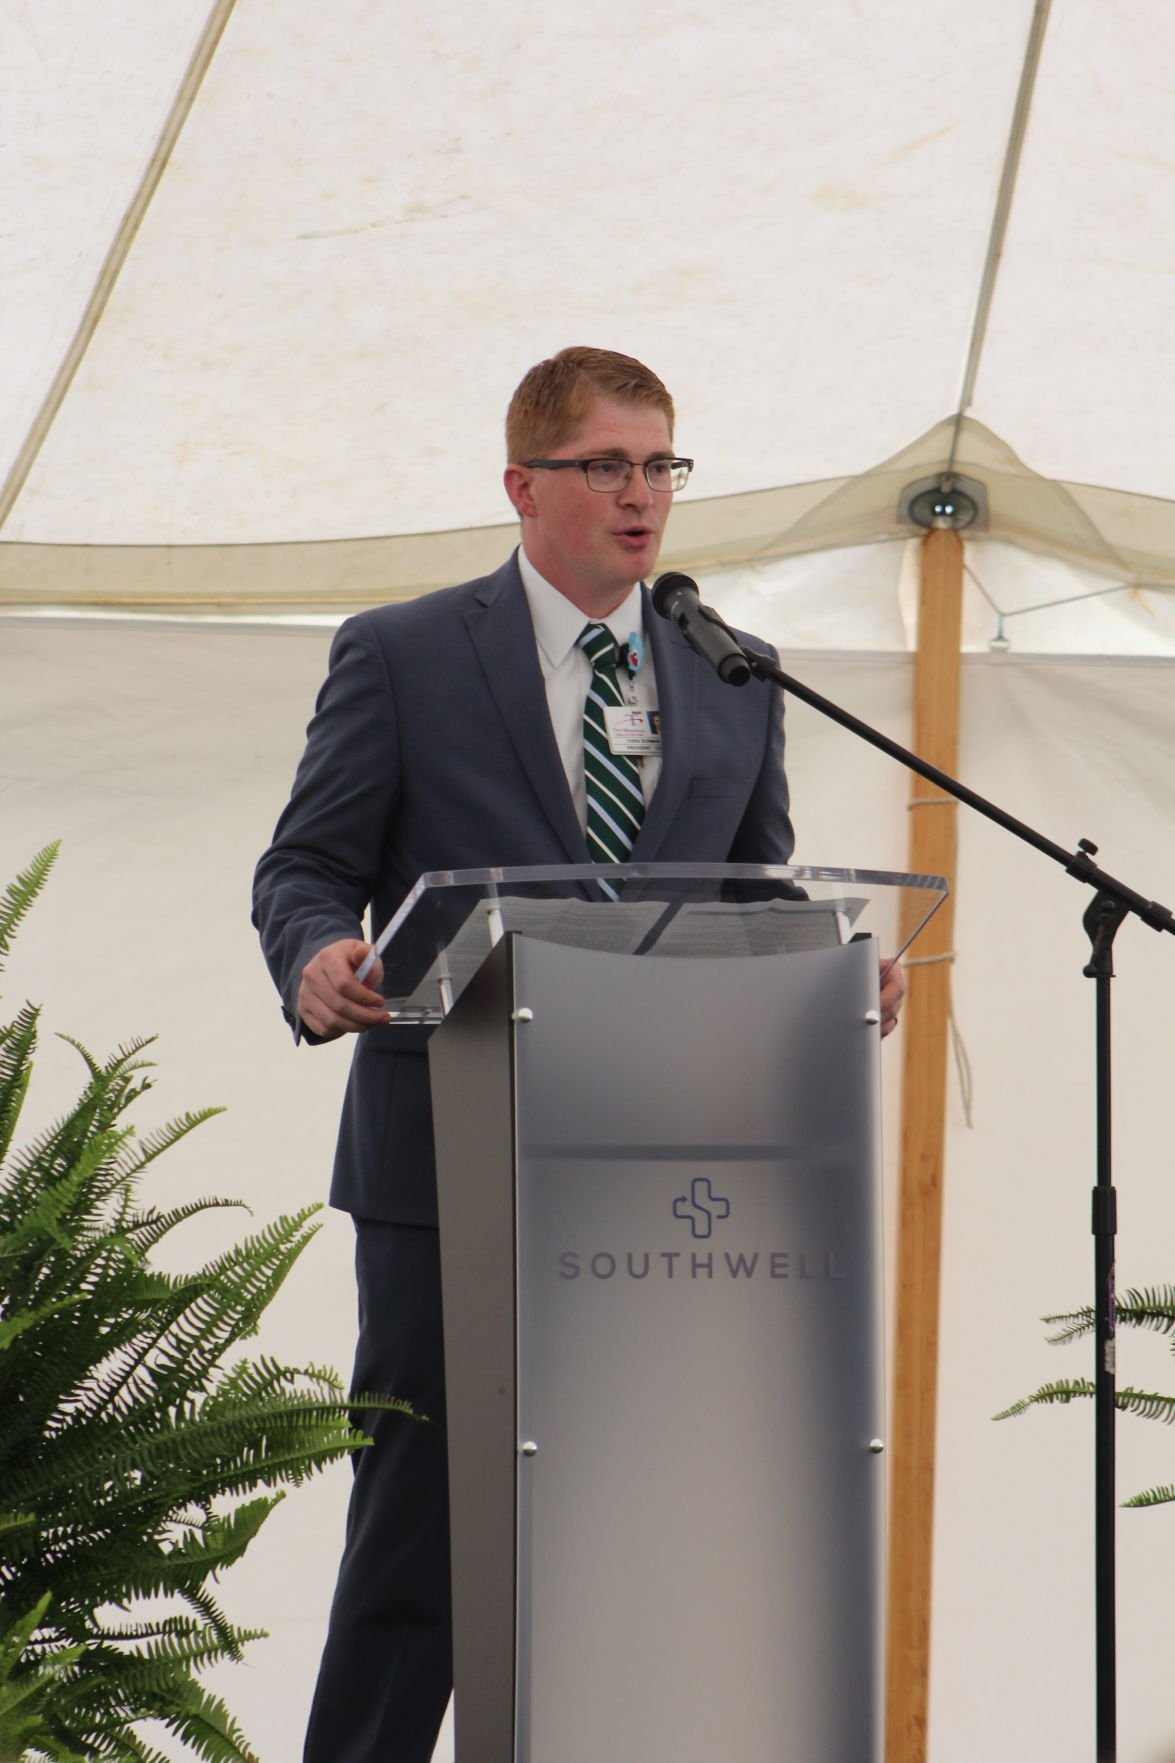 Southwell President and CEO Christopher Dorman addresses the crowd before the ceremonial groundbreaking for the new patient tower. The podium bears the new Southwell system name.